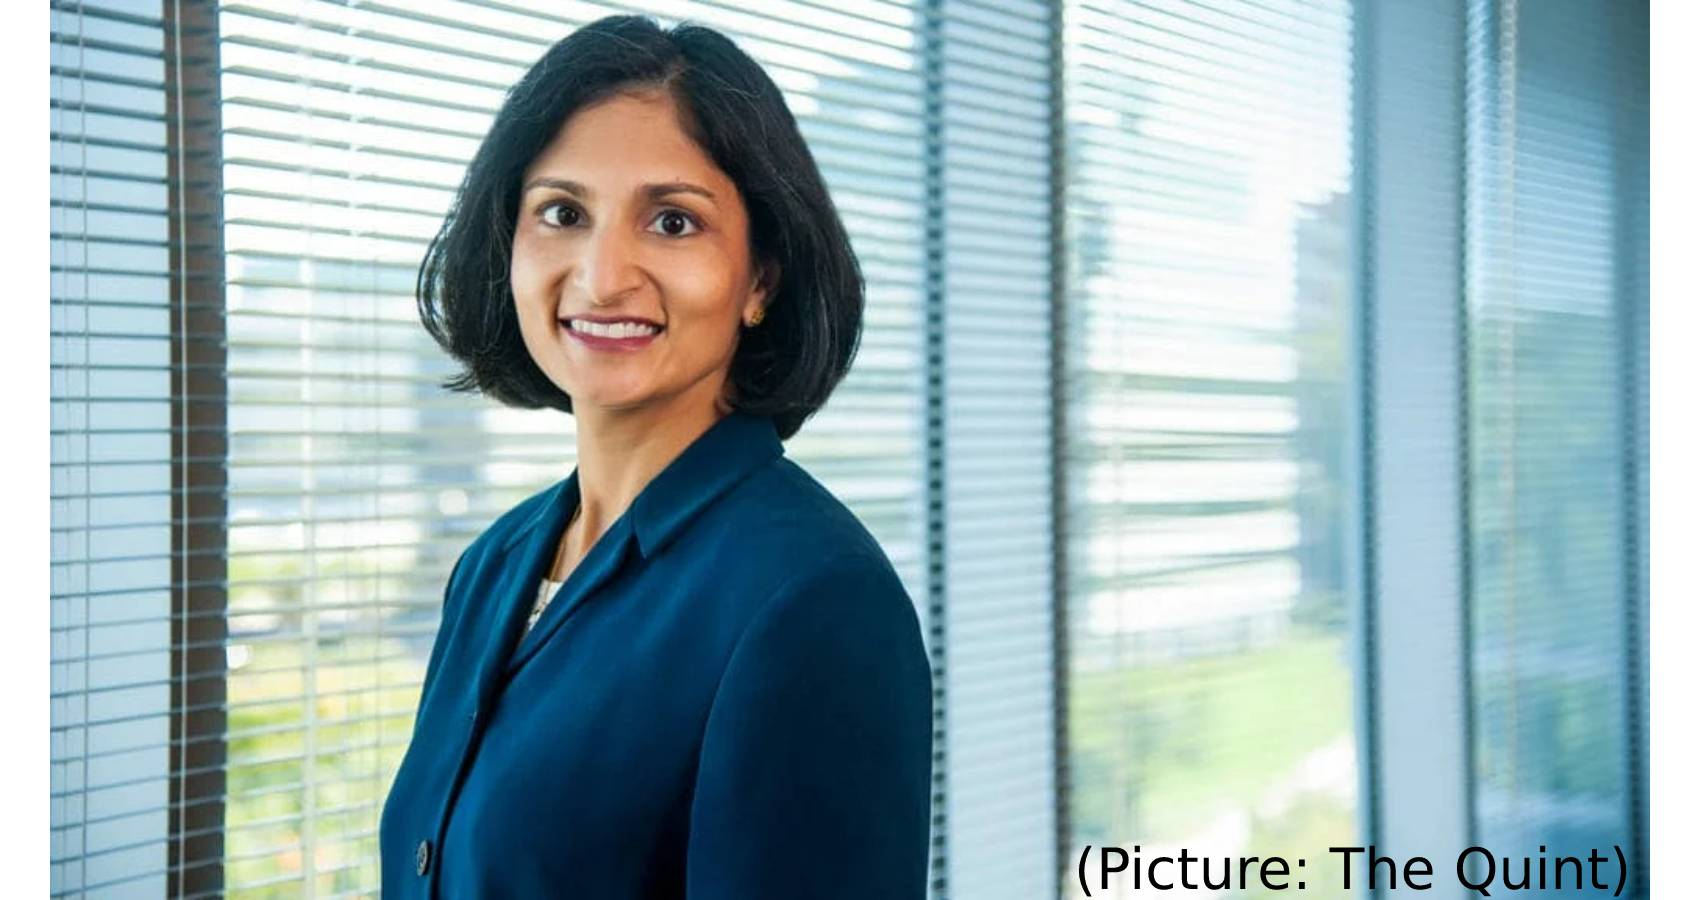 Dr. Meena Seshamani Appointed As Head US Centre For Medicare